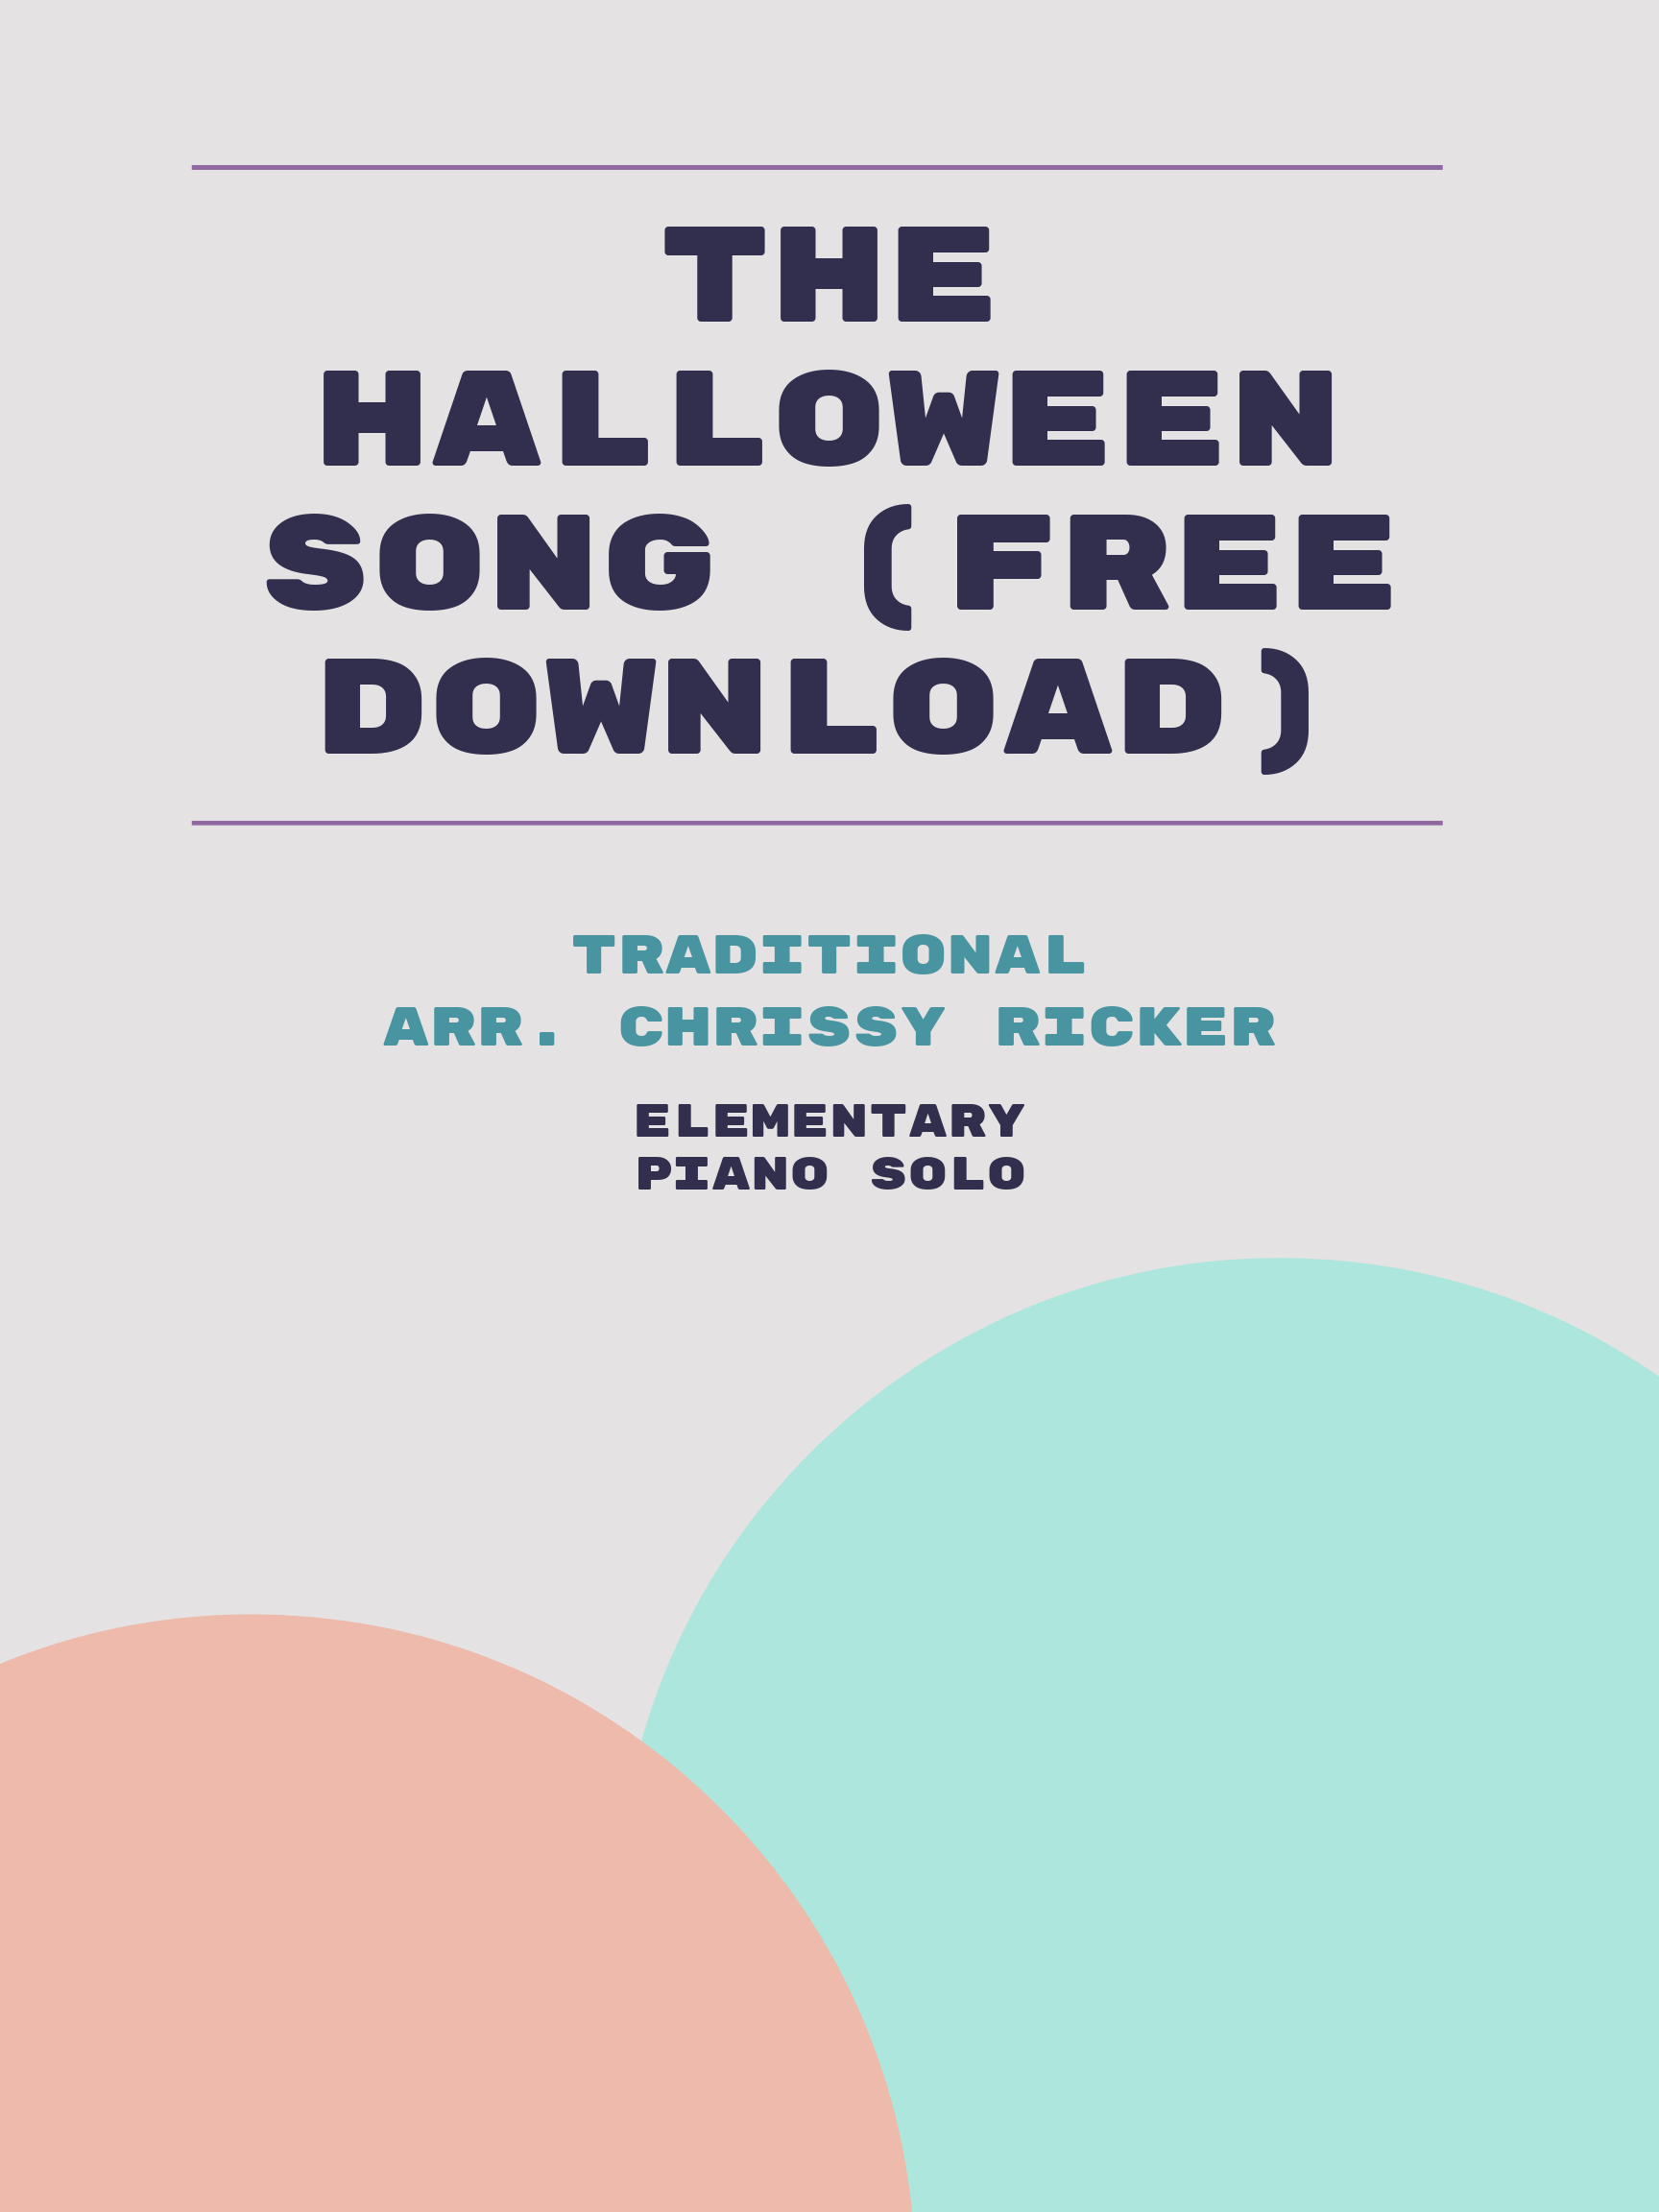 The Halloween Song (free download) by Traditional